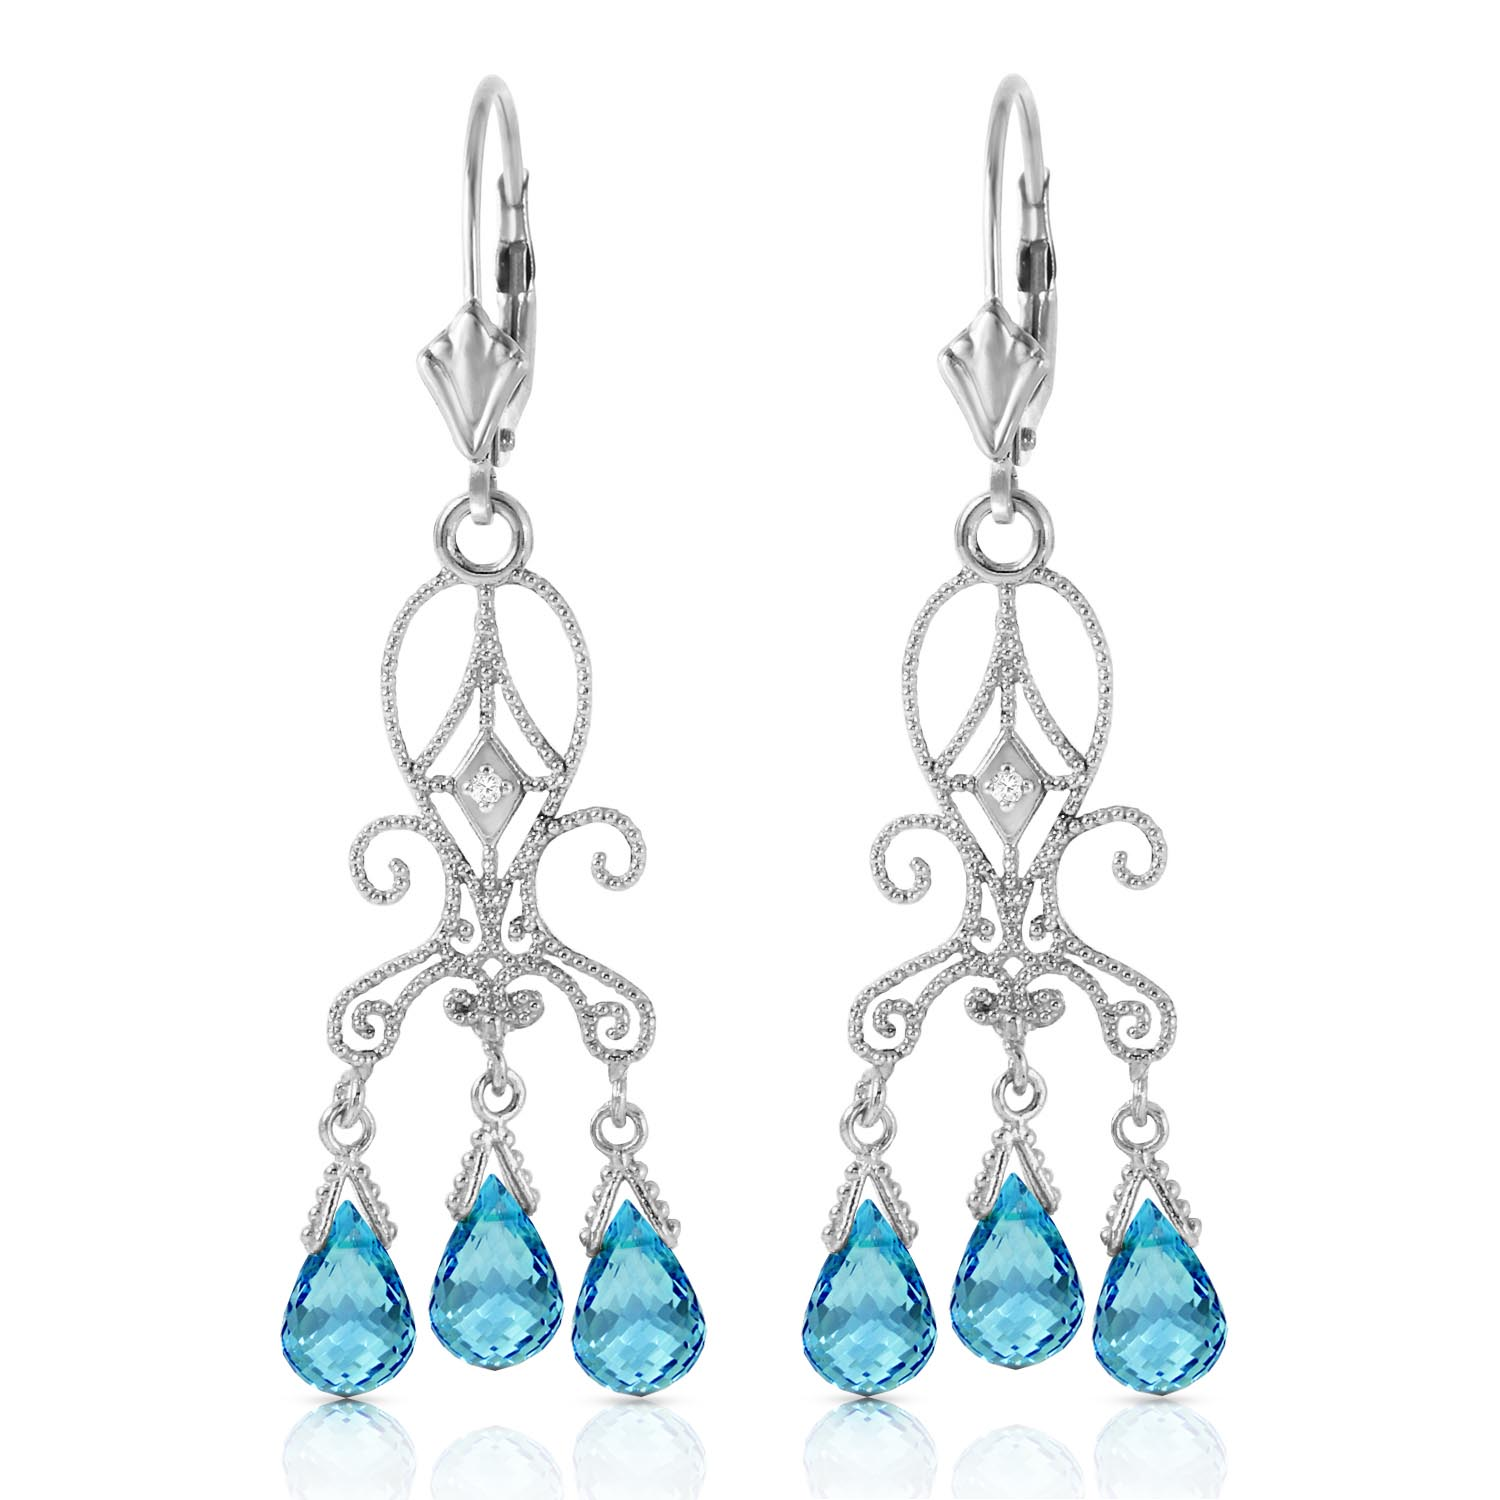 Blue Topaz and Diamond Baroque Drop Earrings 4.8ctw in 9ct White Gold